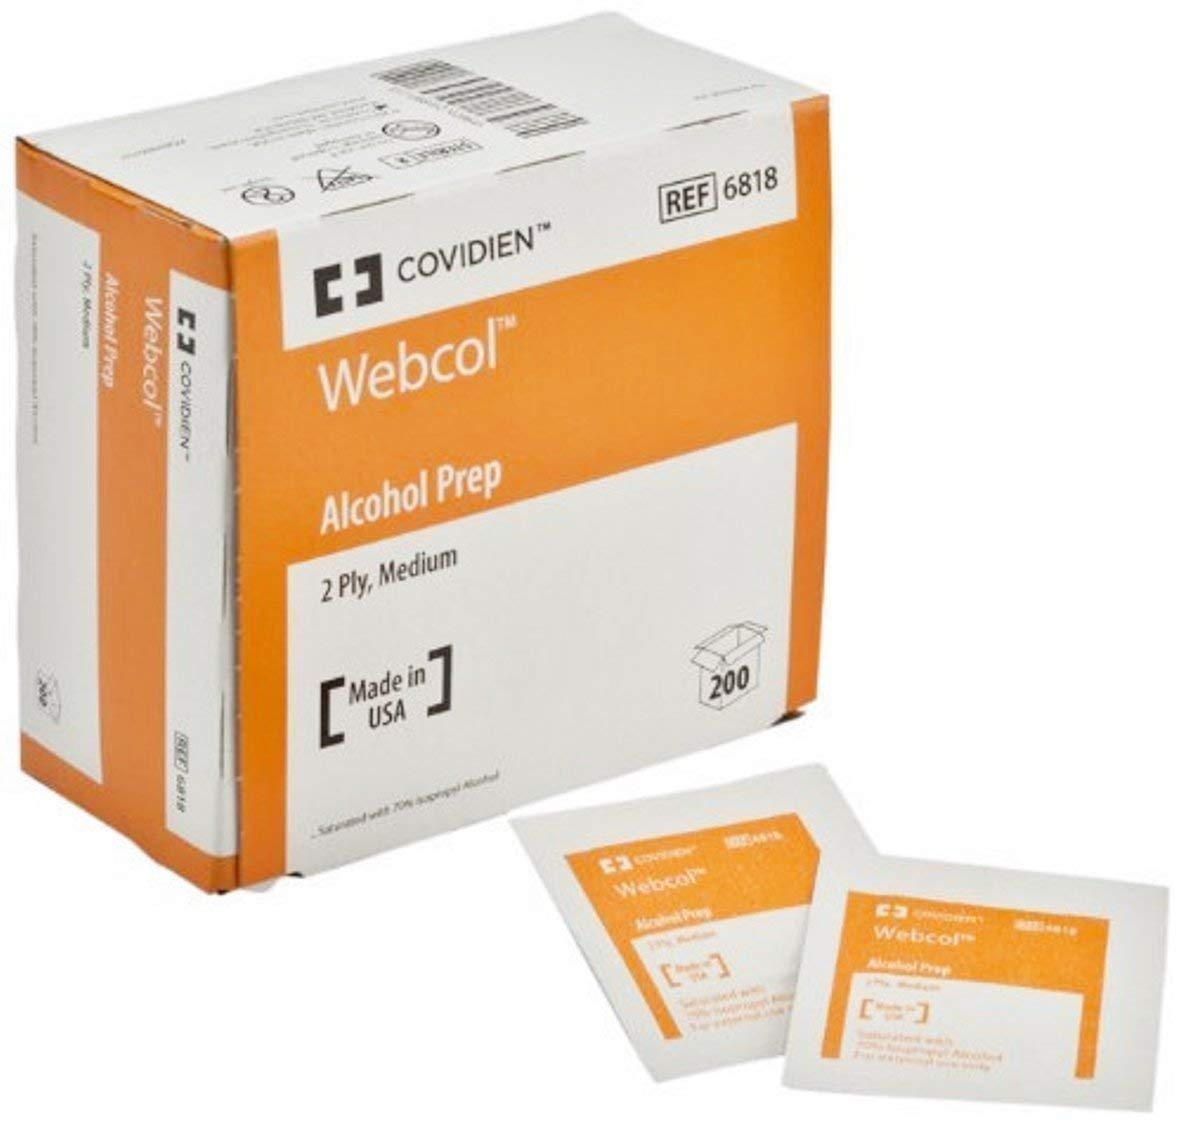 Special Sale - 5 Boxes of 200 - WEBCOL Alcohol Prep Pads KND6818 KENDALL MP-KND6818 Box, Premium pad material provides maximum absorbency for.., By COVIDIEN,USA